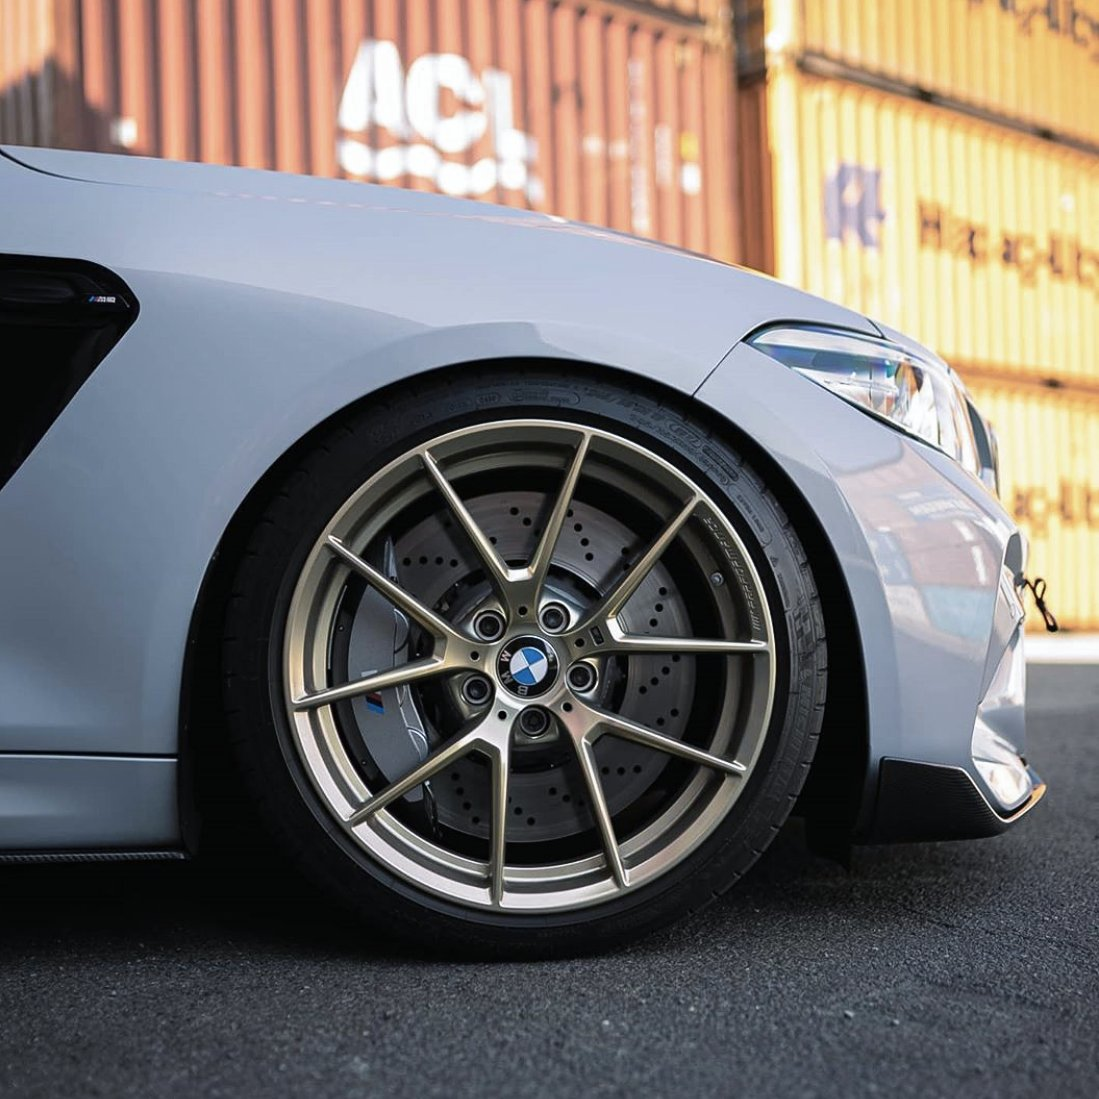 The #BMW M2 Competition captured by Michel Hündür. For your chance to be featured, take a photo of your genuine #BMW Wheels and comment below. #BMWWheelWednesdayspic.twitter.com/zm1v9GApYI